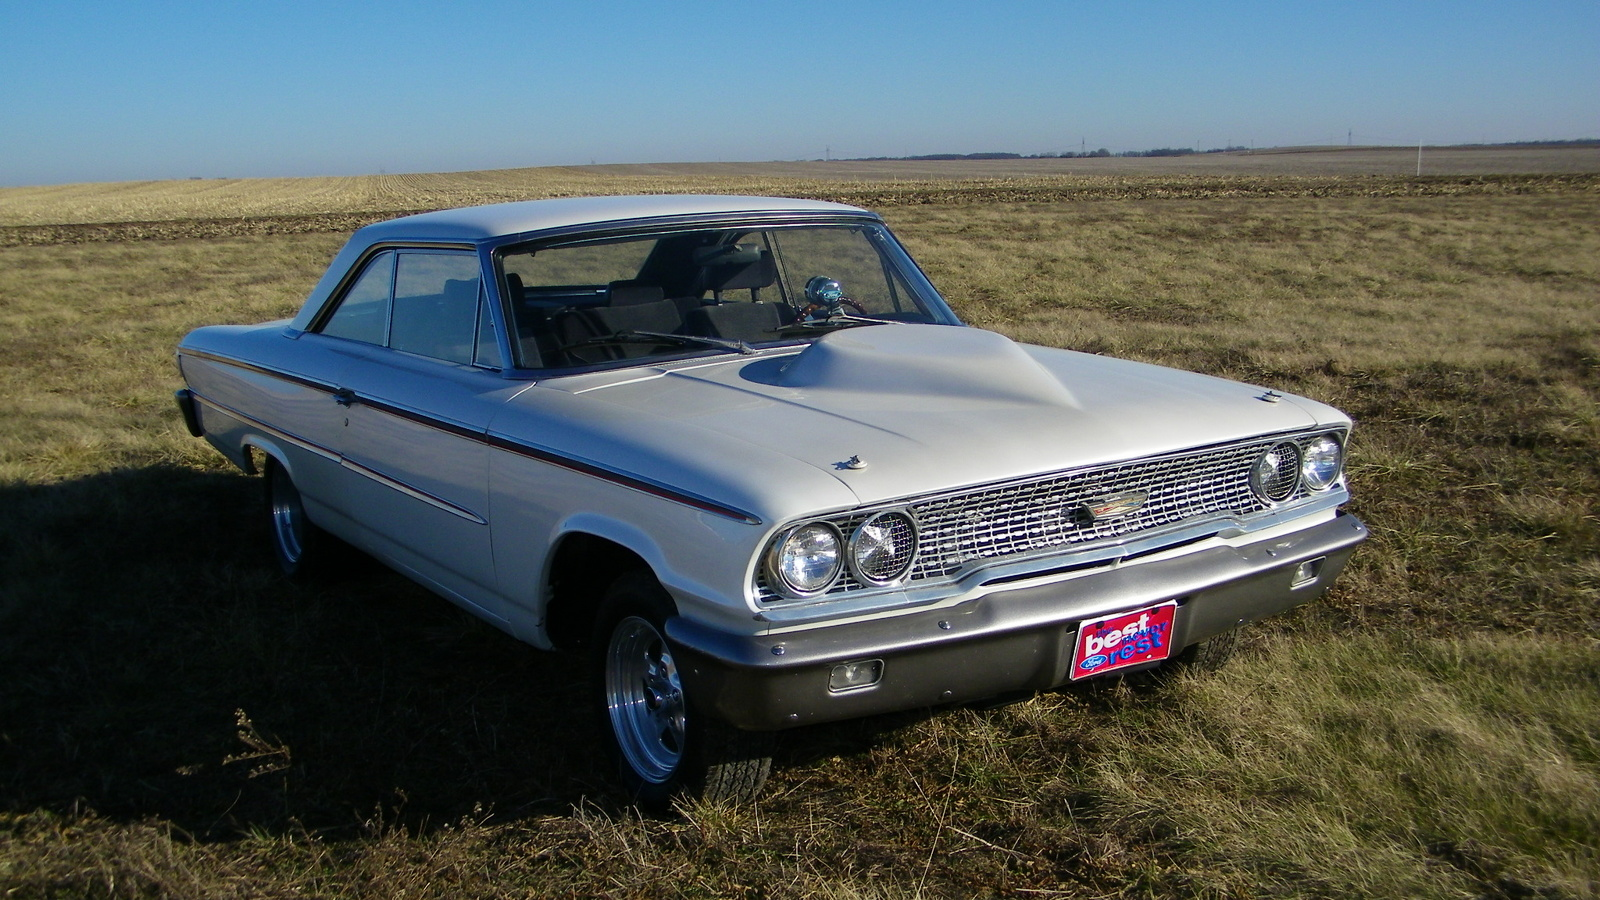 1963 Ford Galaxie Overview C11485 on 1964 ford ranchero s